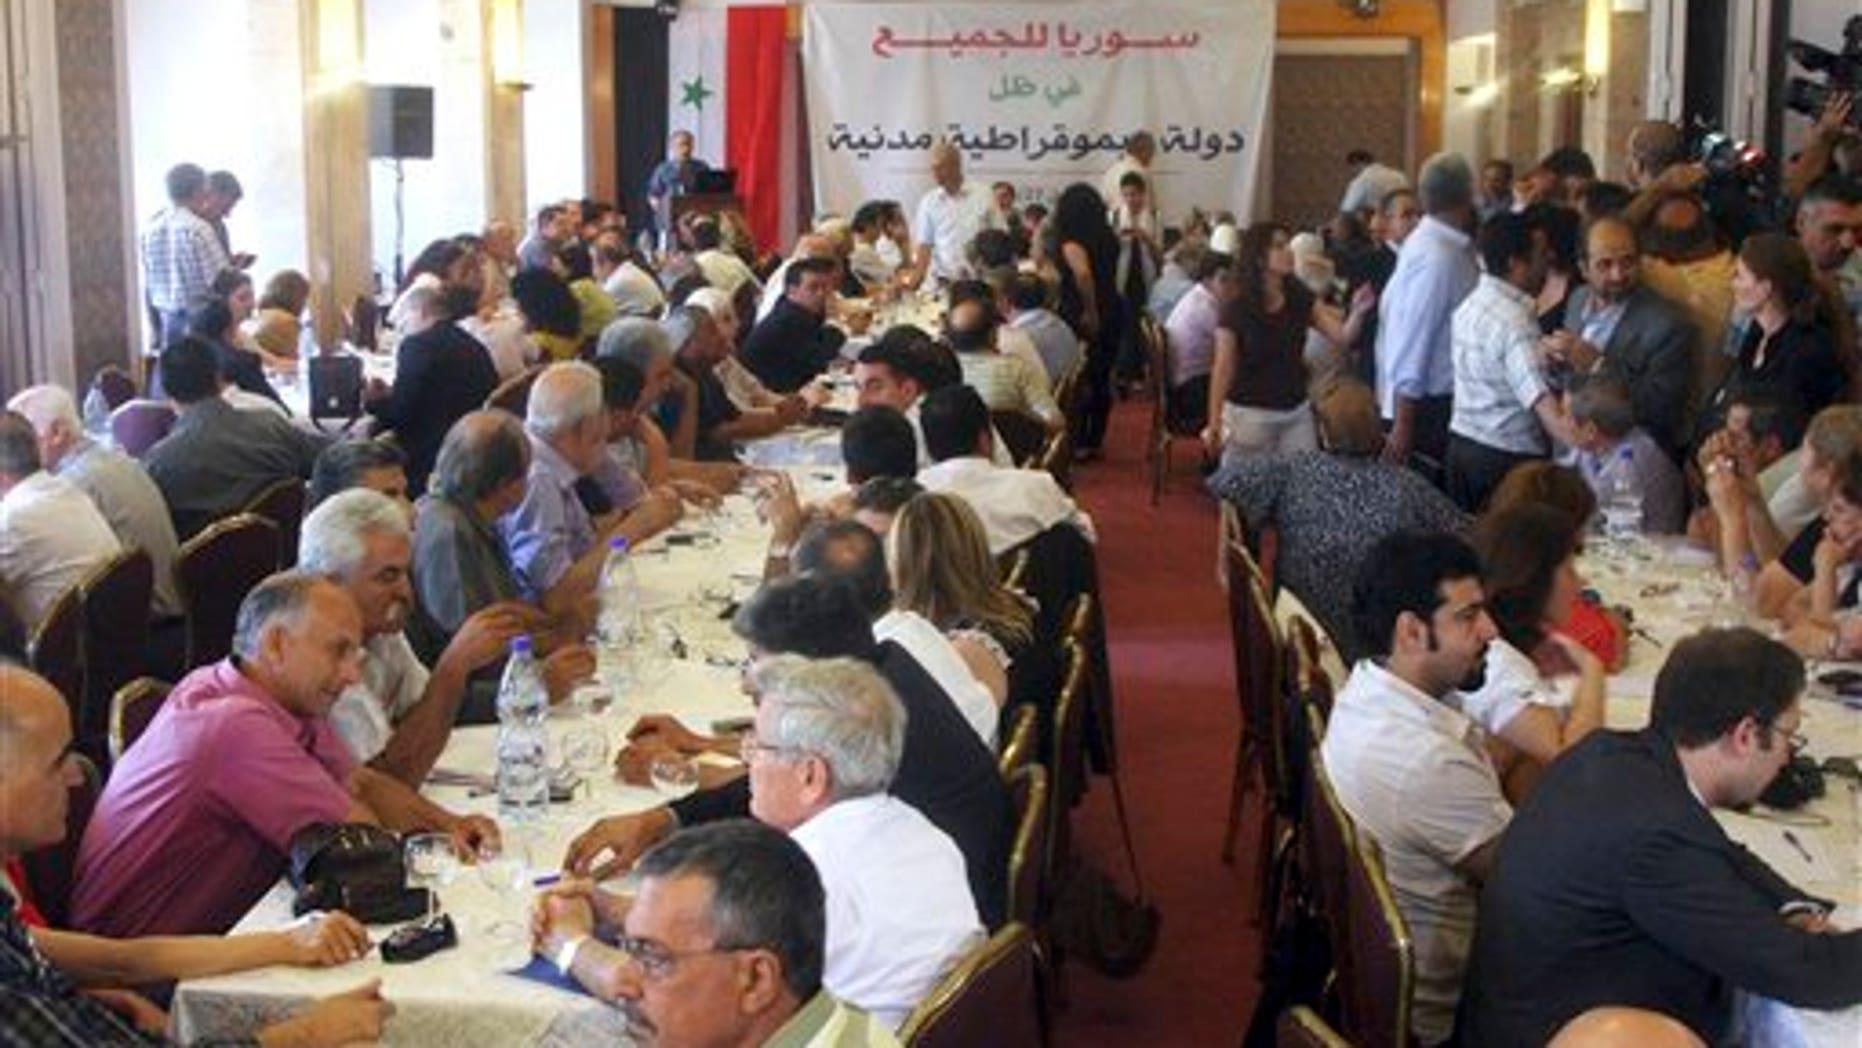 "June 27: Prominent opposition figures and critics of Syrian President Bashar Assad's regime gather for a meeting in Damascus, Syria. Nearly 200 critics of President Bashar Assad met Monday in the Syrian capital for the first time during the three-month uprising against his rule, in a government-sanctioned gathering some activists complained would be exploited to give legitimacy to the regime. The attached banner in Arabic reads ""Syria is for everybody, in the shadow of a democratic civil state."""